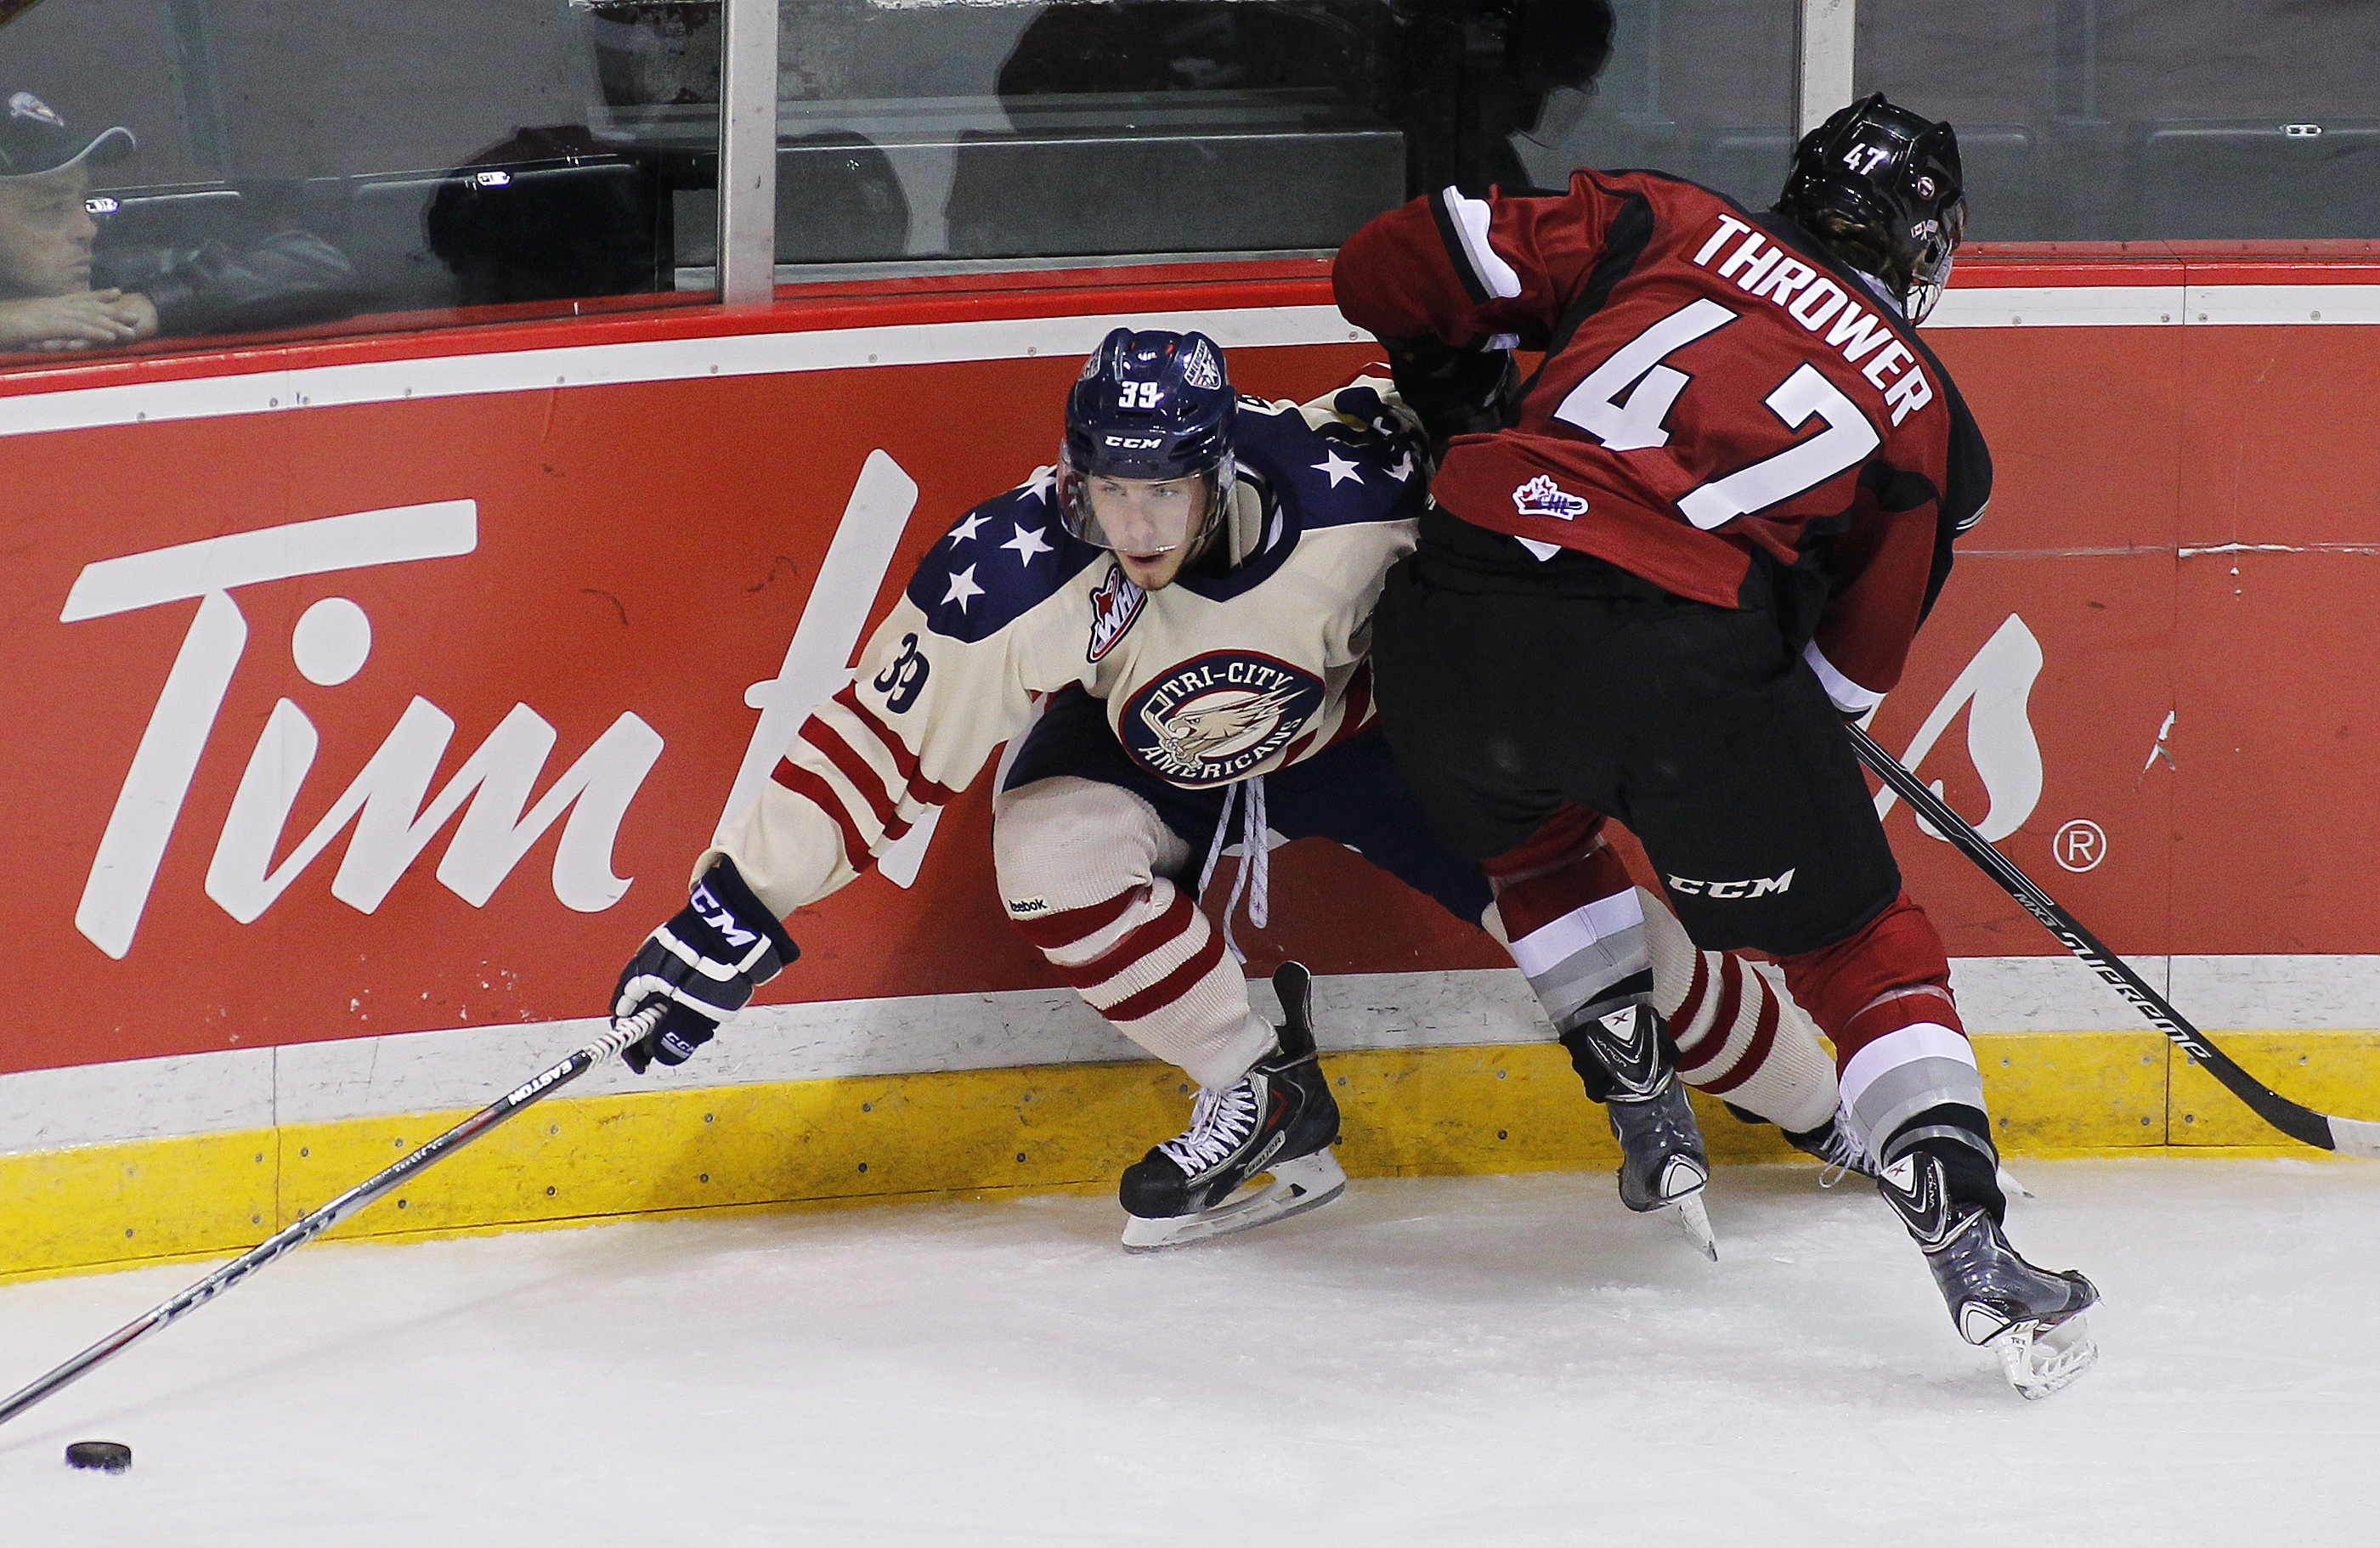 Parker Bowles (39) ended his WHL career Saturday with a goal and an assist in a victory over Spokane.